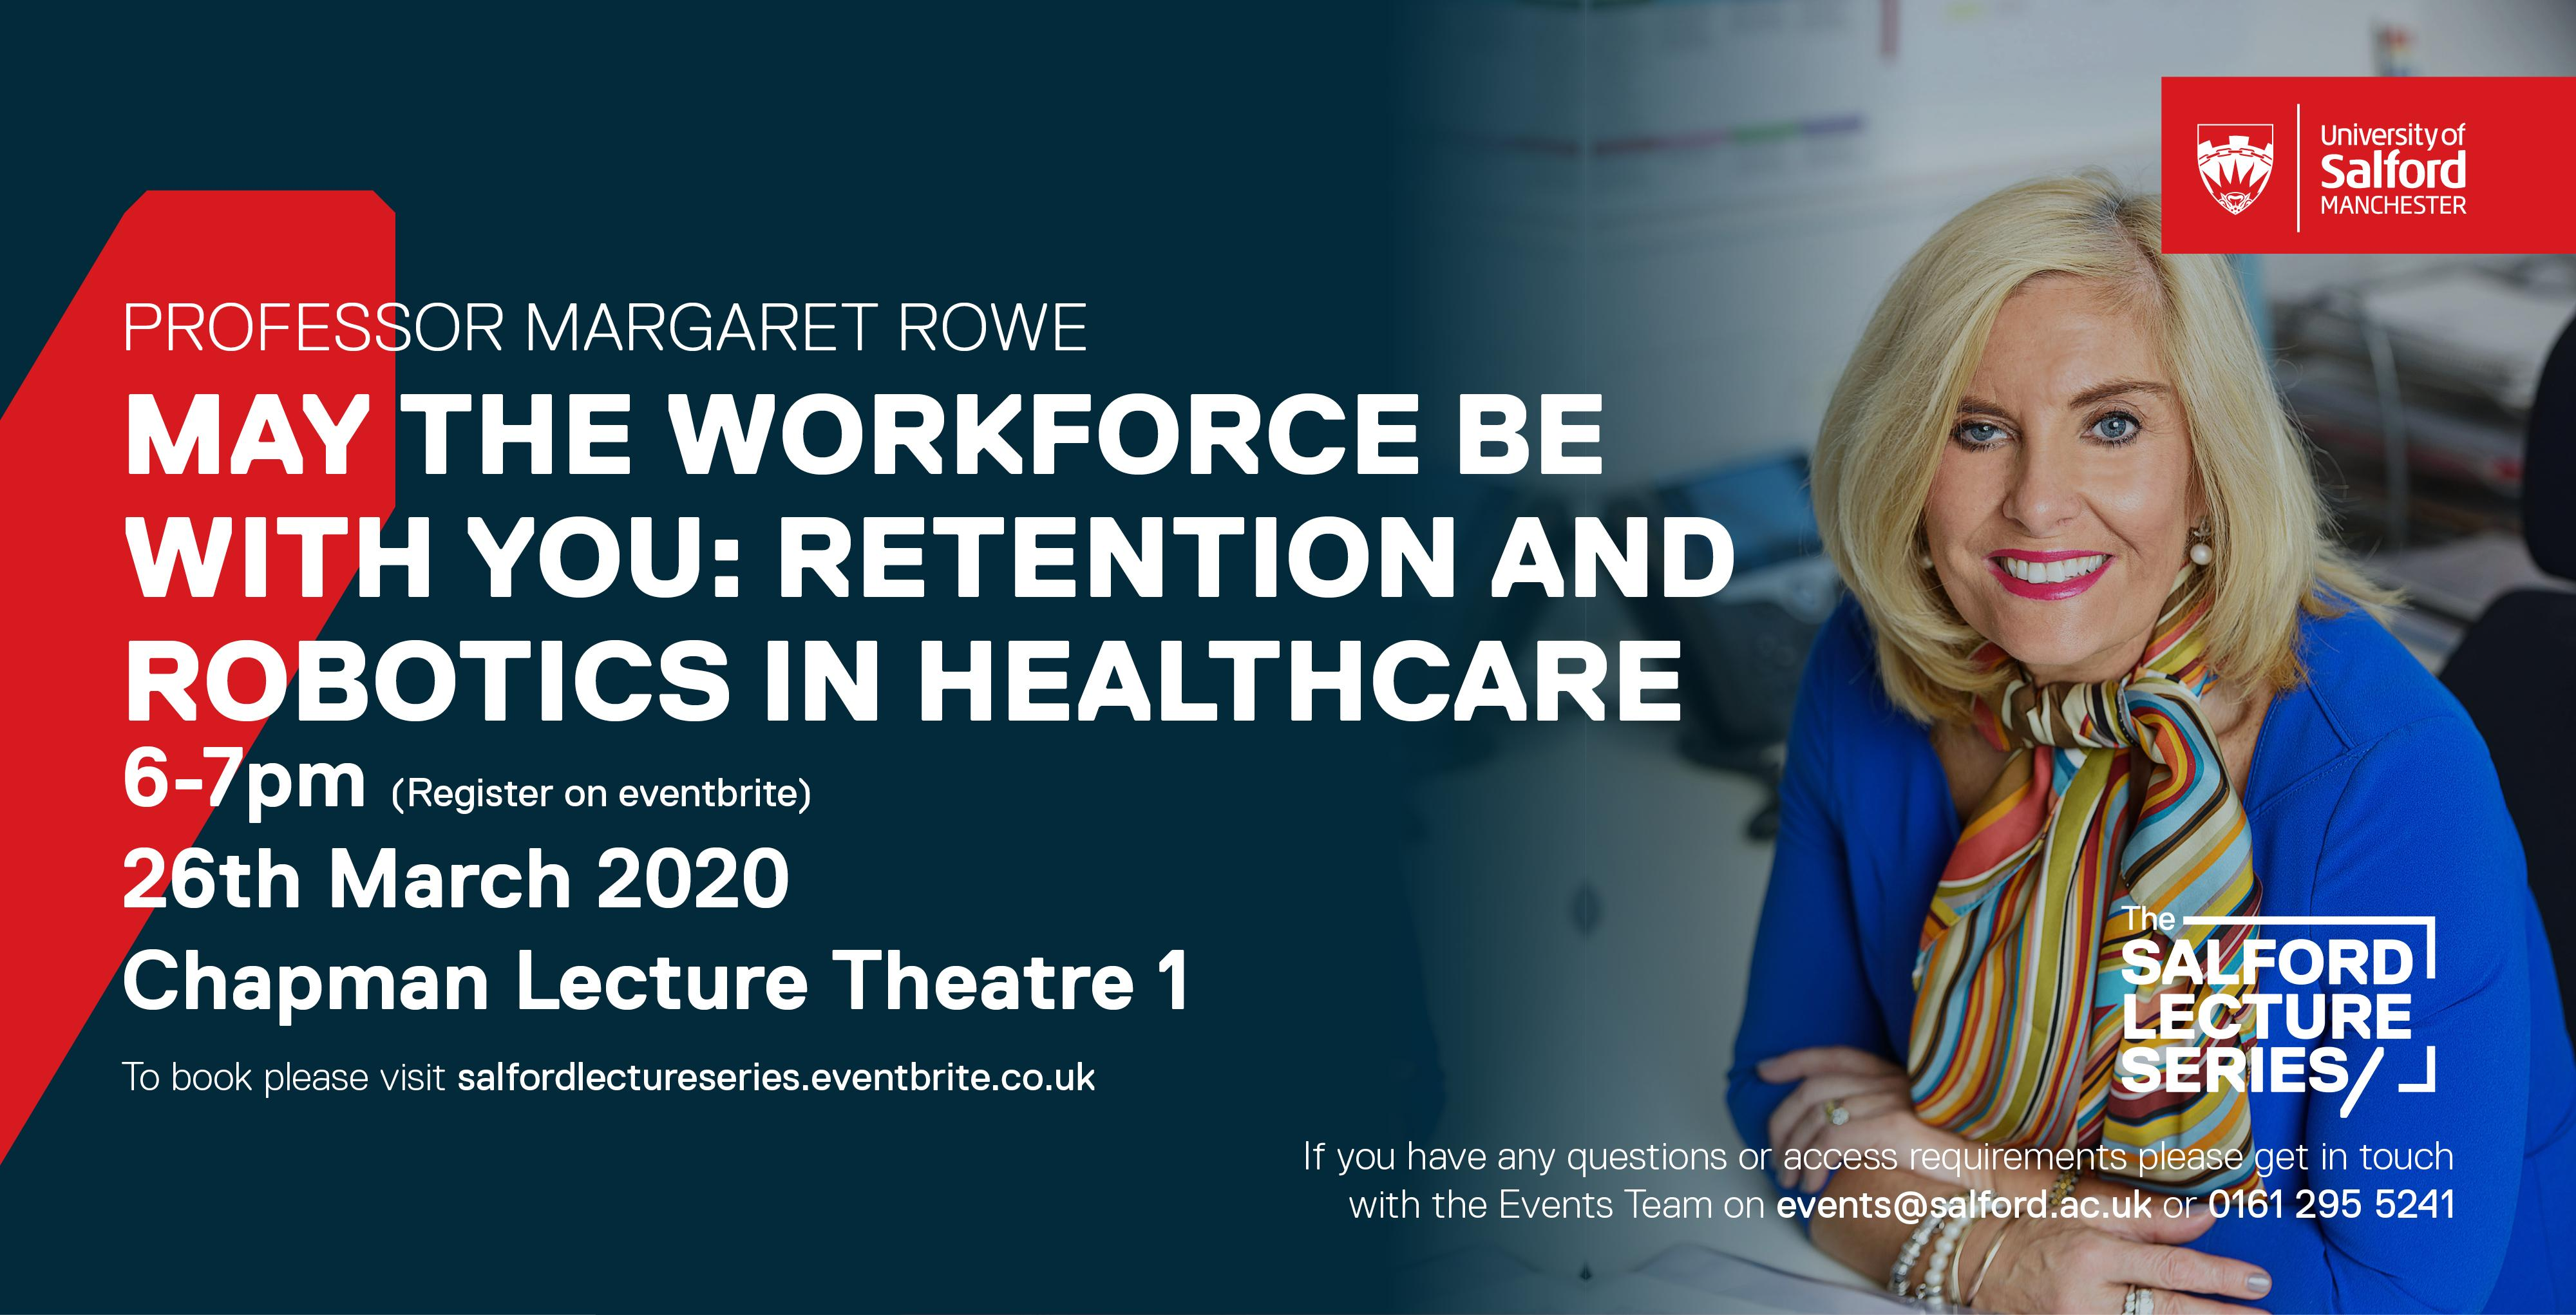 May the workforce be with you: Retention and Robotics in Healthcare